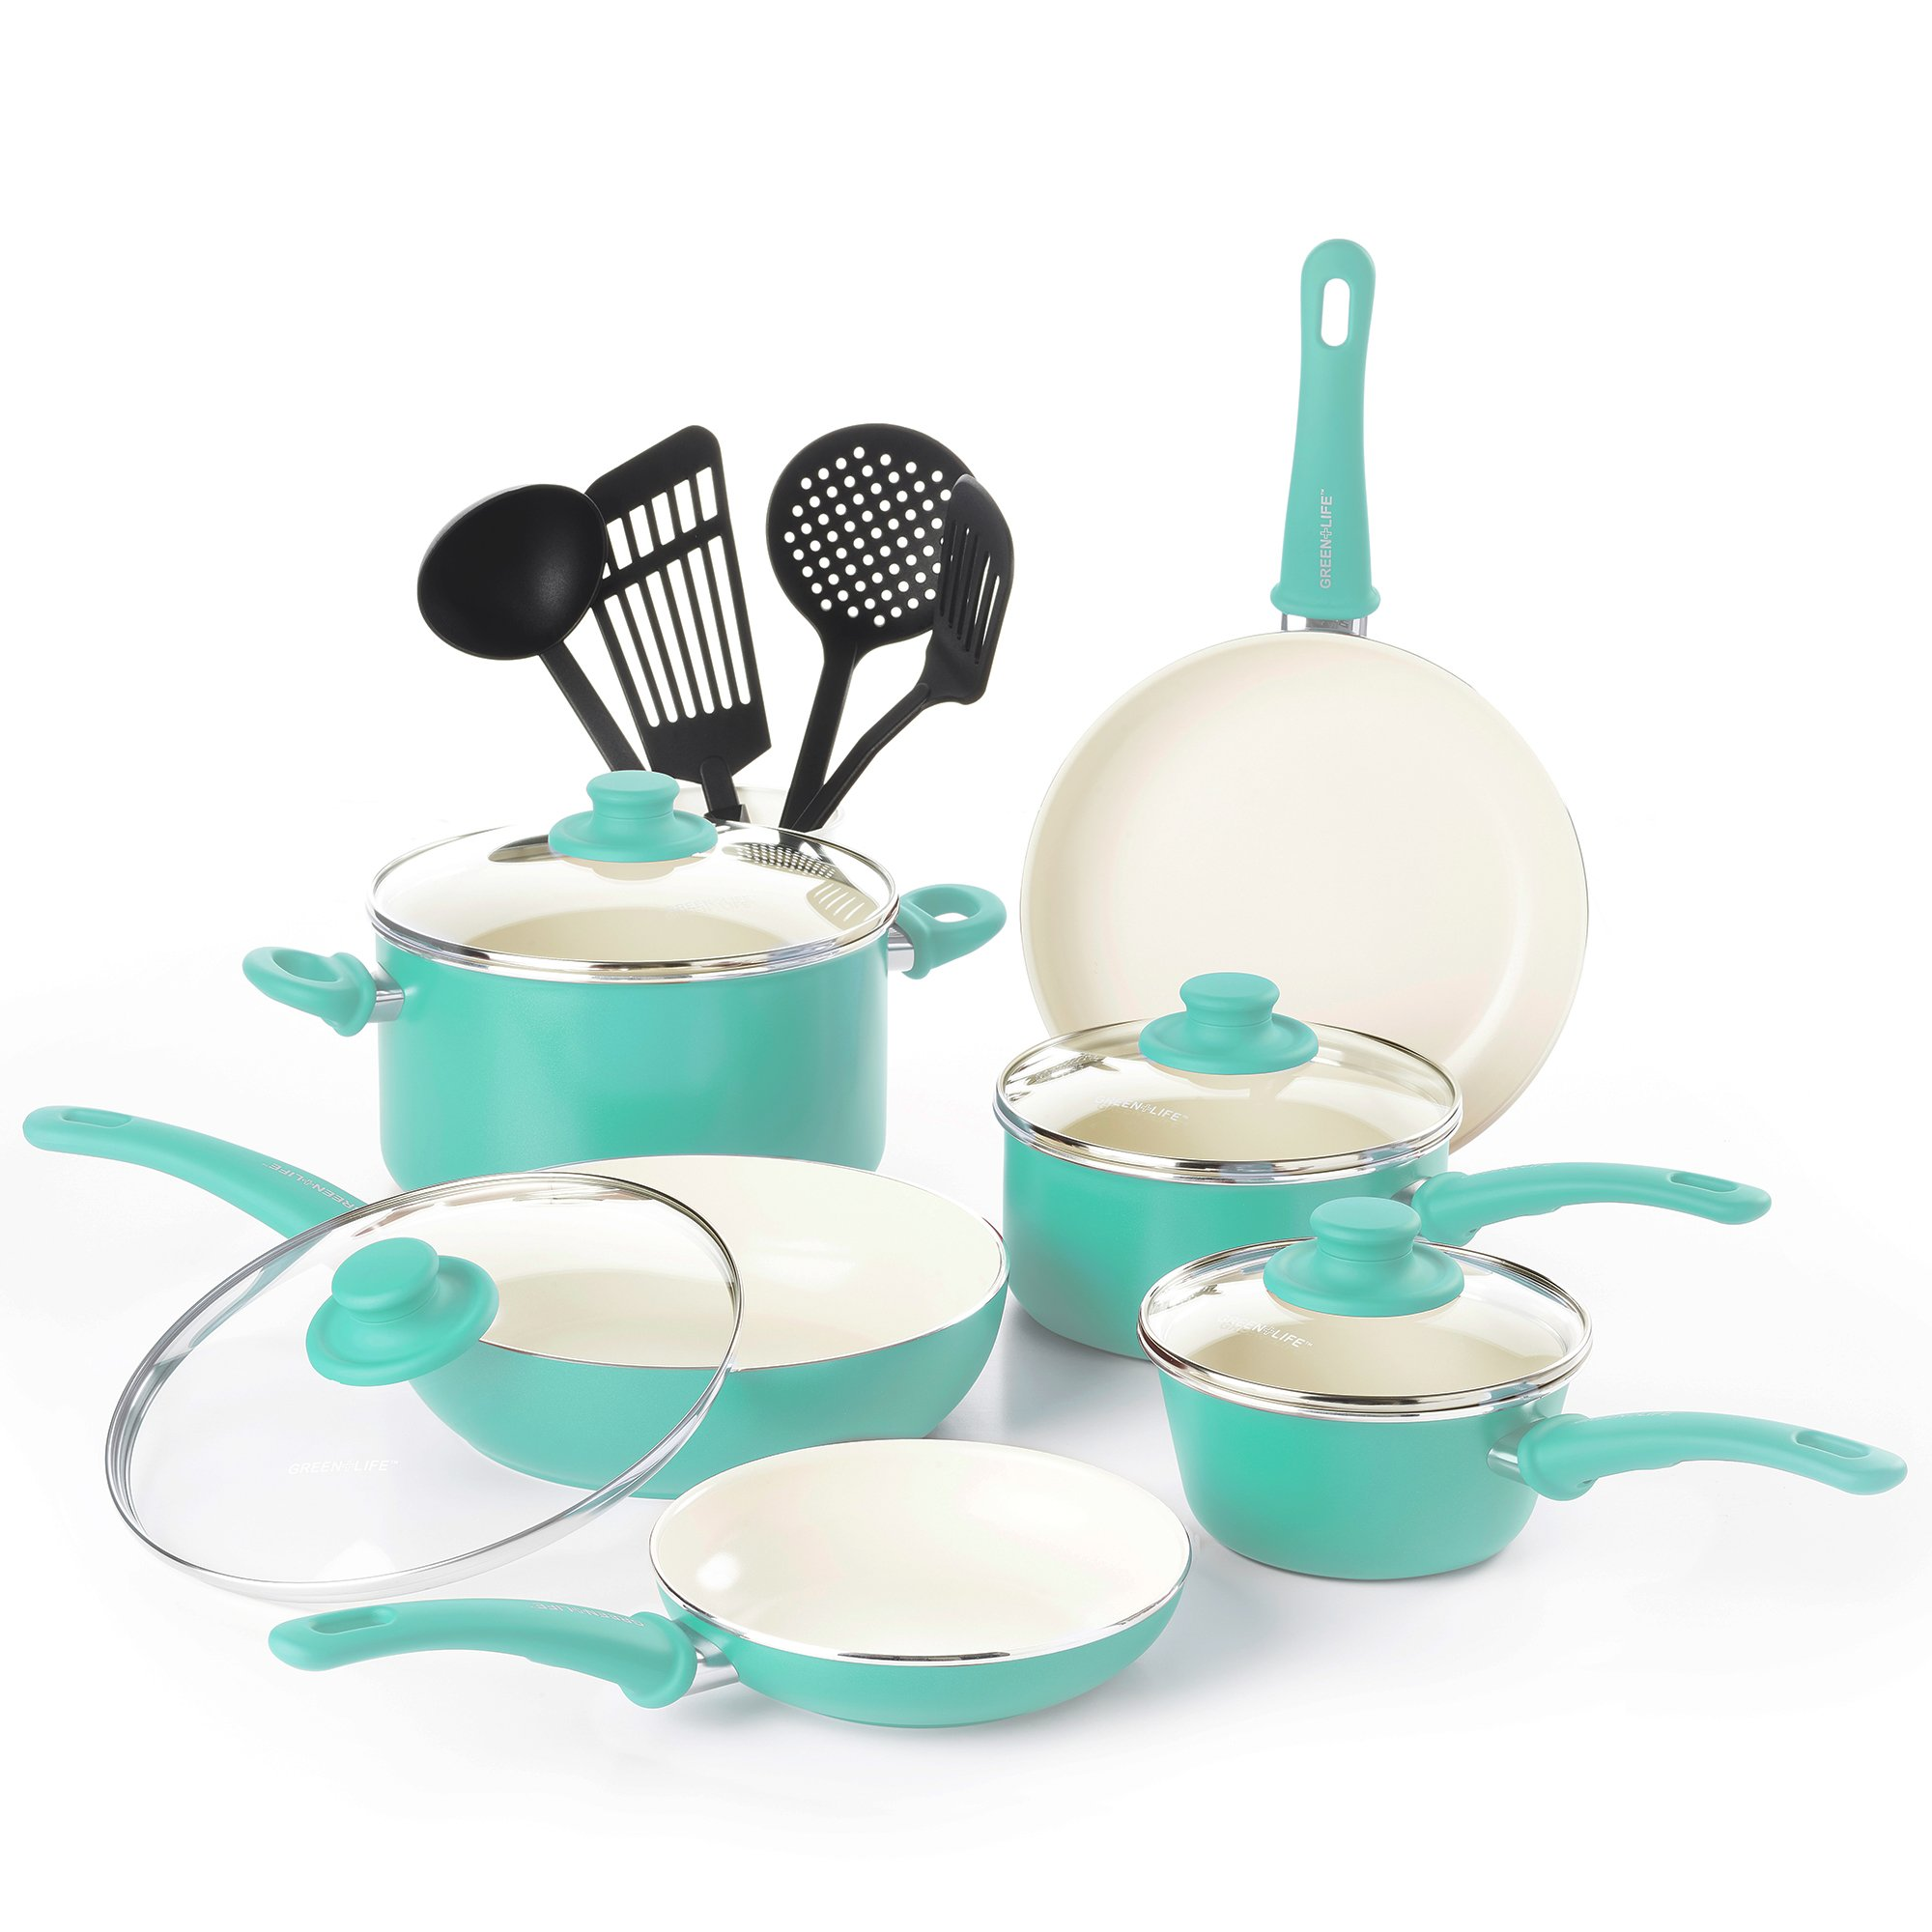 GreenLife CW000531-002 Soft Grip Absolutely Toxin-Free Healthy Ceramic Nonstick Dishwasher/Oven Safe Stay Cool Handle Cookware Set, 14-Piece, Turquoise